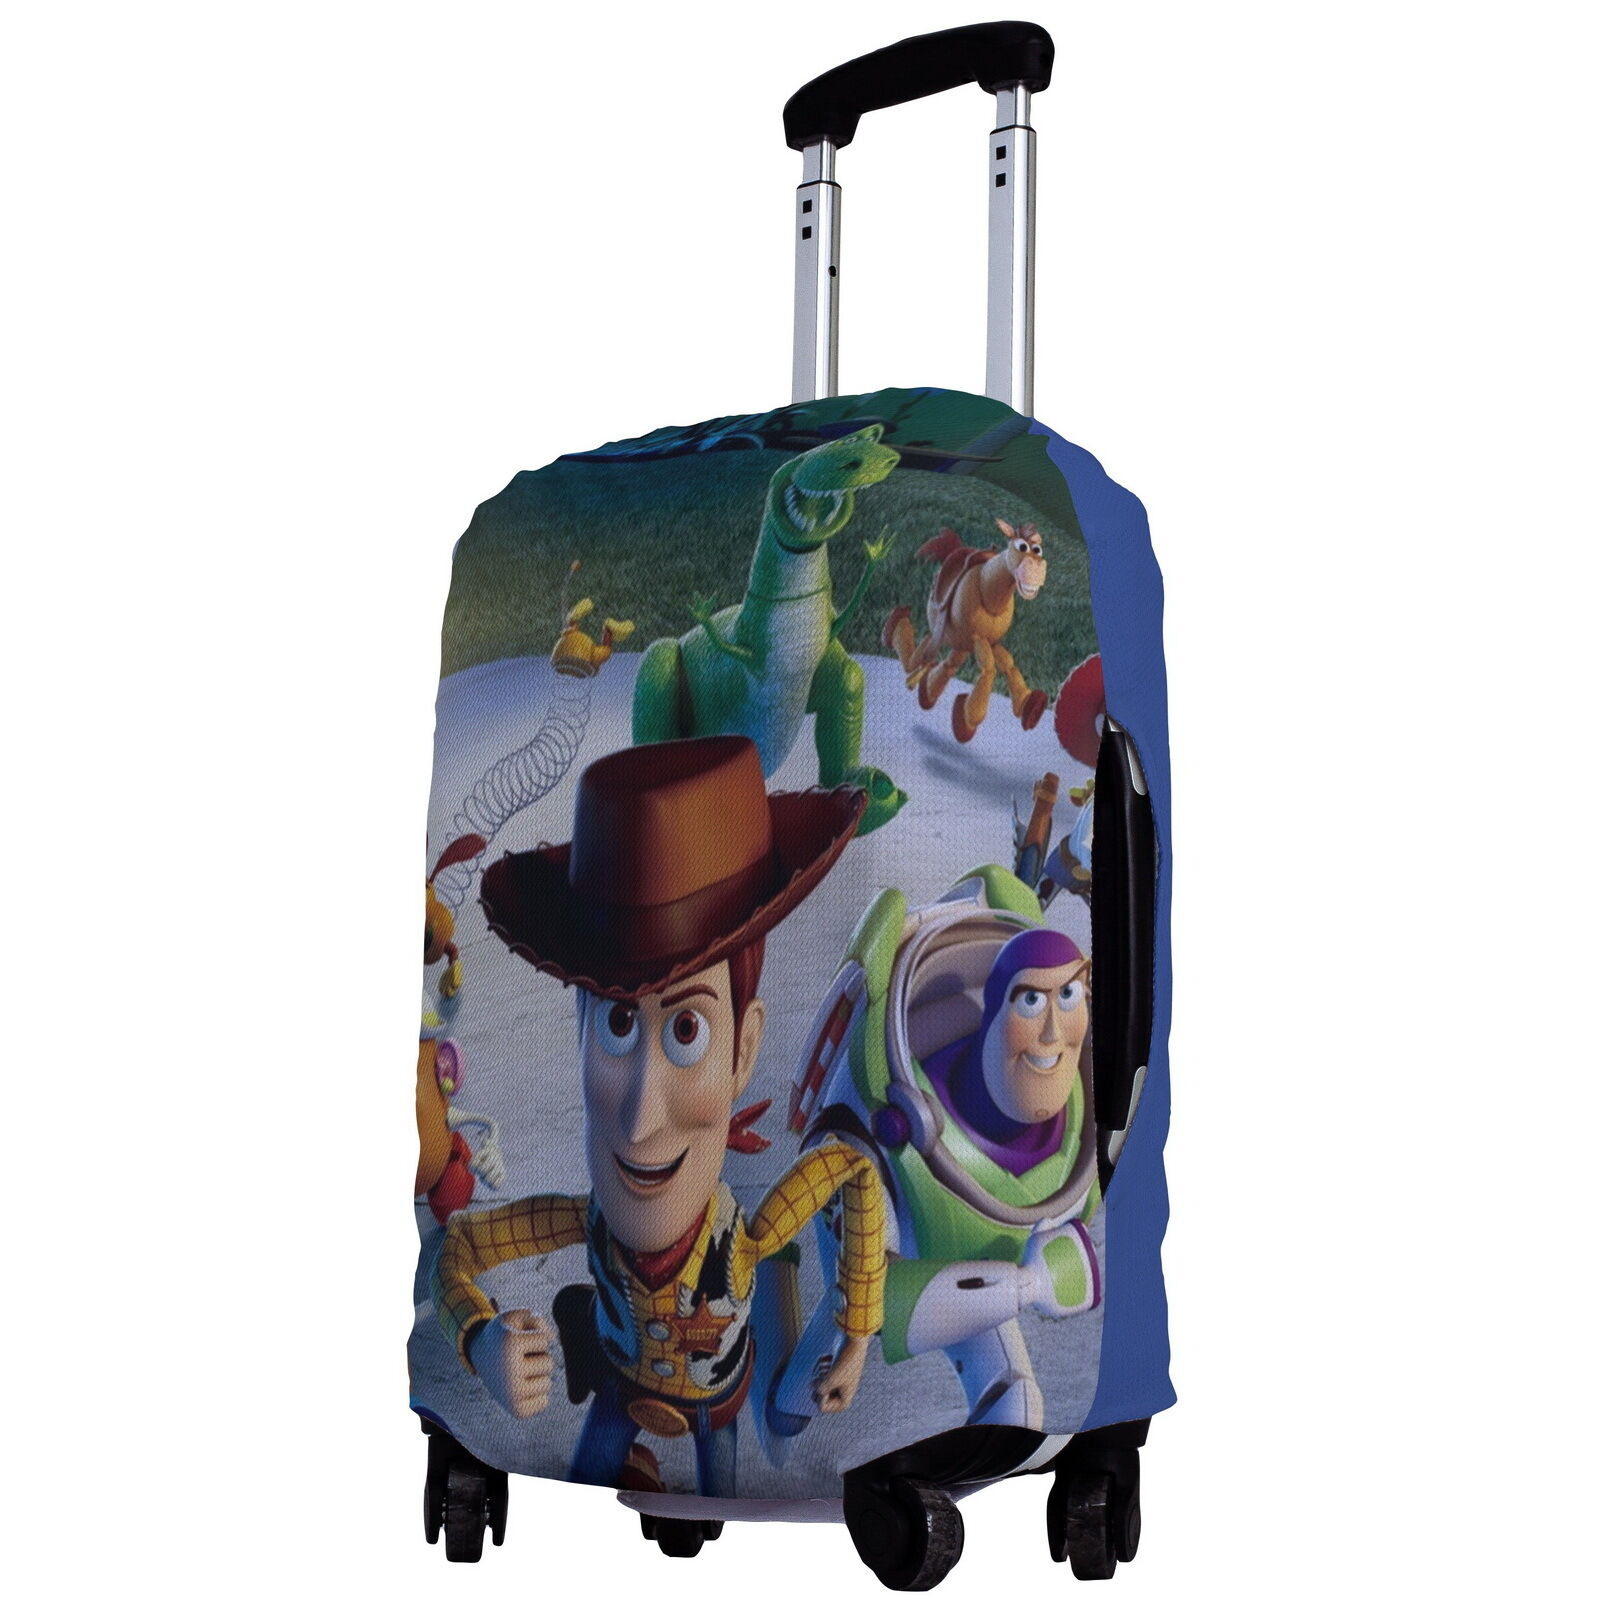 Toy Story 2 Action Suitcase Cover